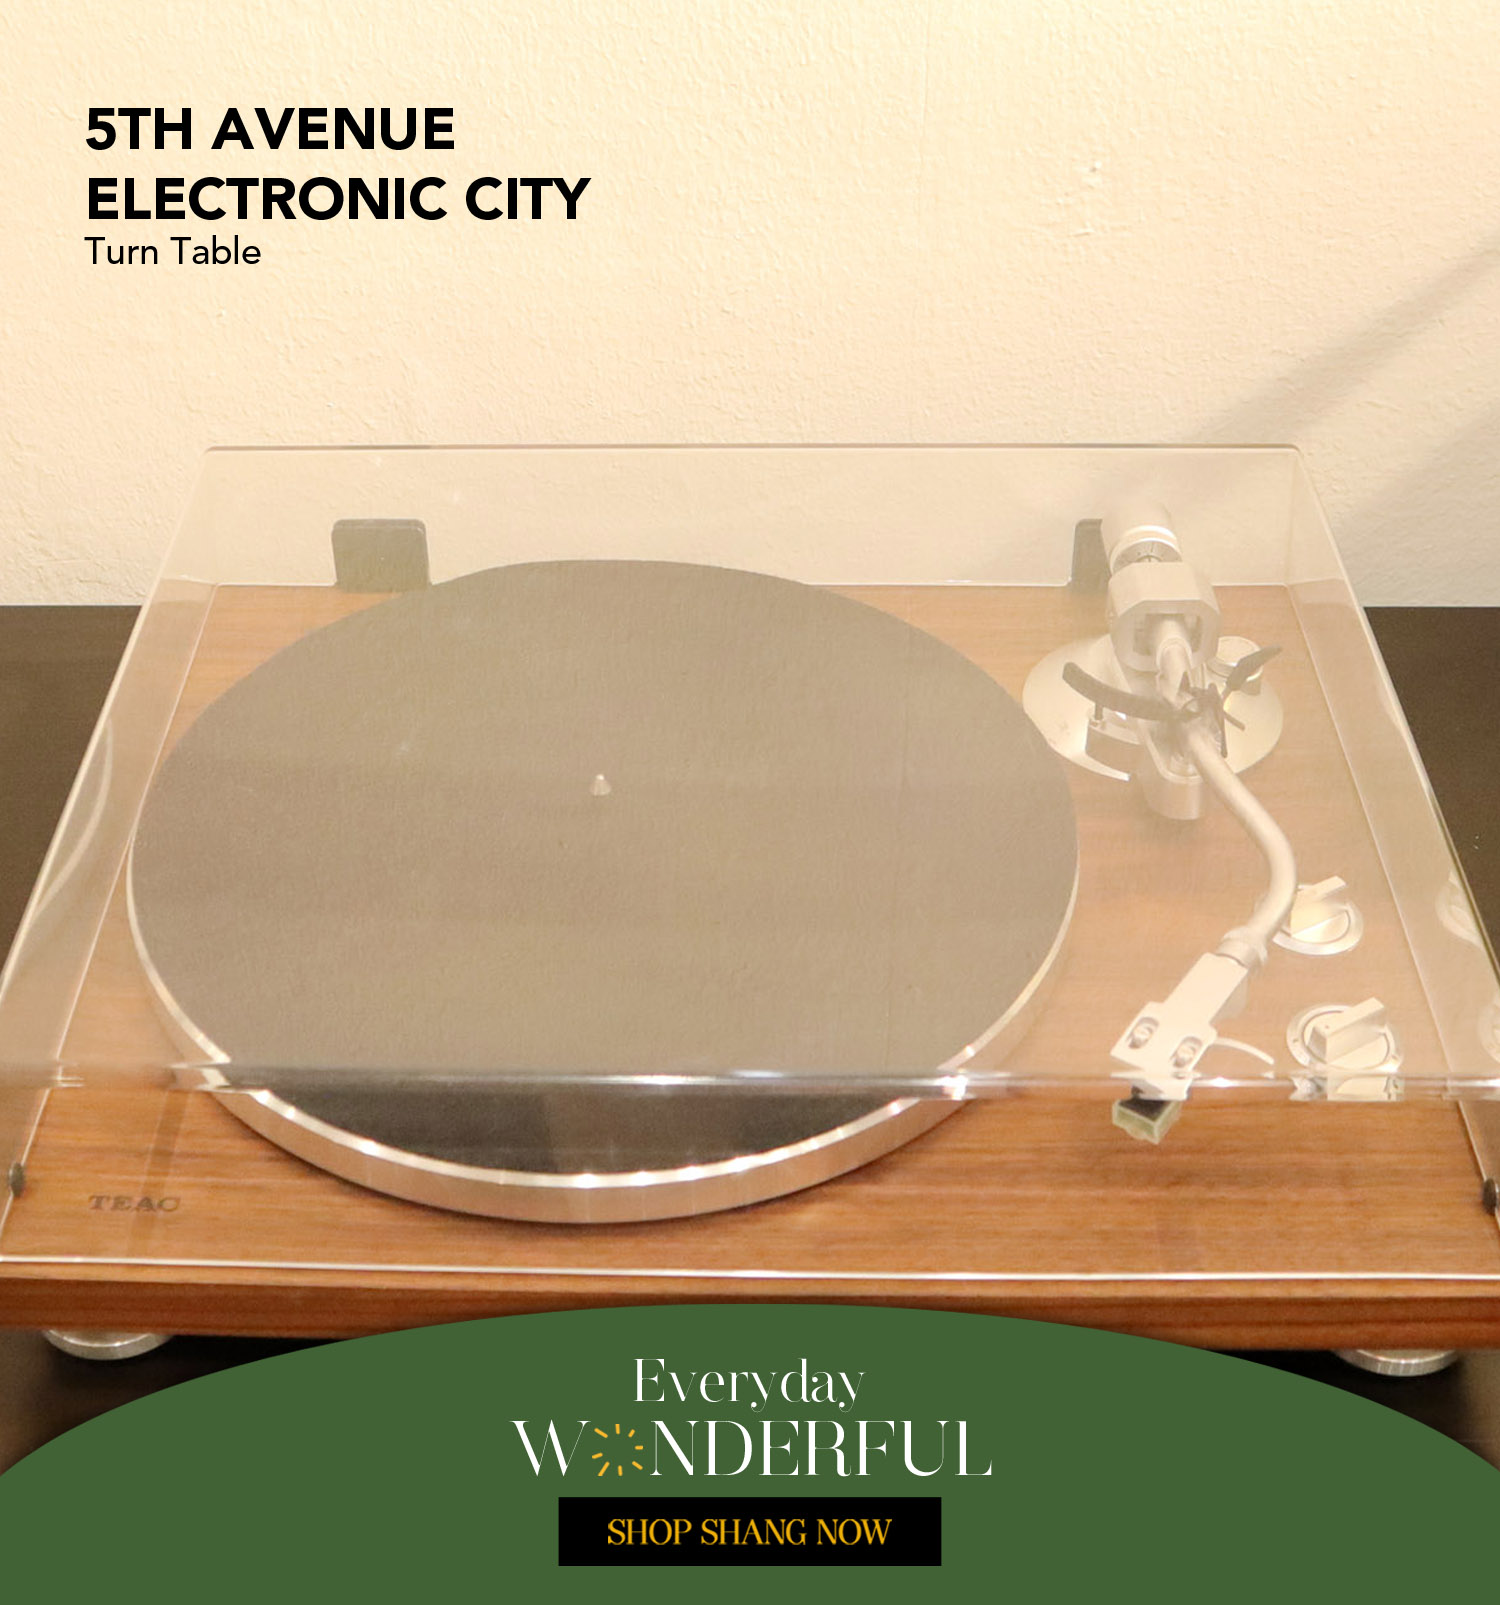 Turn Table from 5th Avenue Electronic City